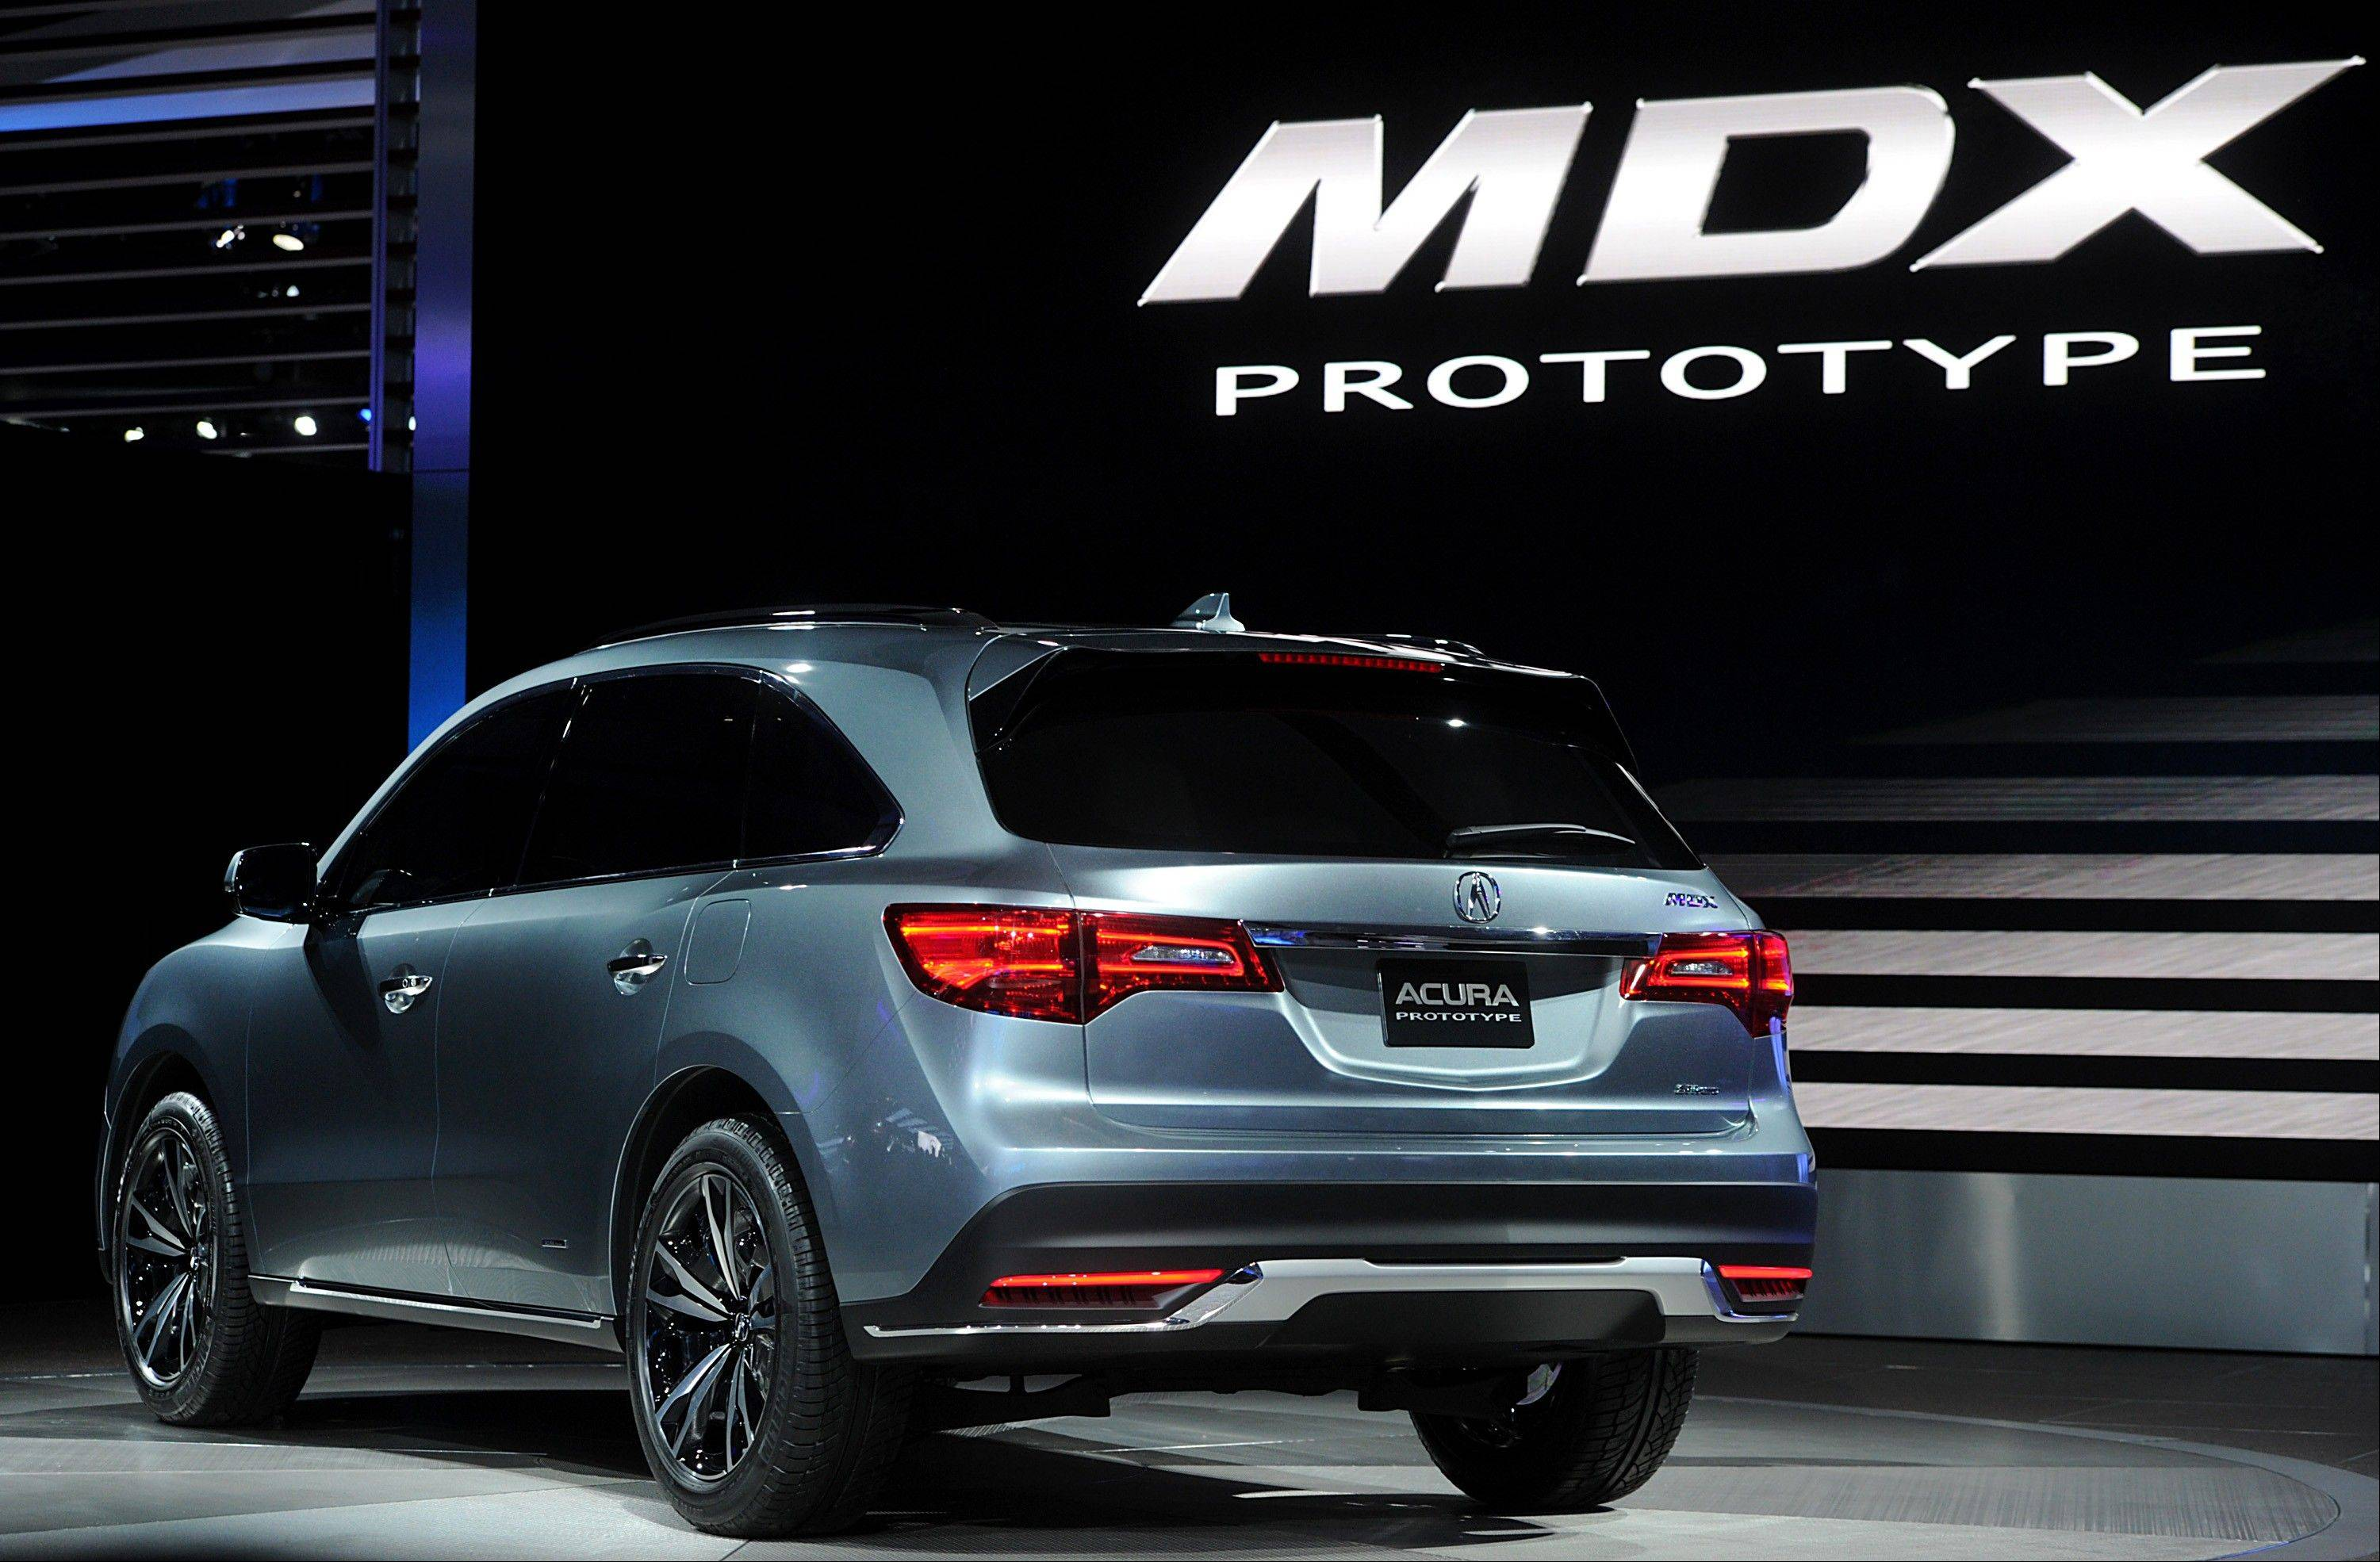 The Honda Motor Co. Acura MDX prototype vehicle is displayed during the 2013 North American International Auto Show (NAIAS) in Detroit, Michigan, U.S., on Tuesday, Jan. 15, 2013.